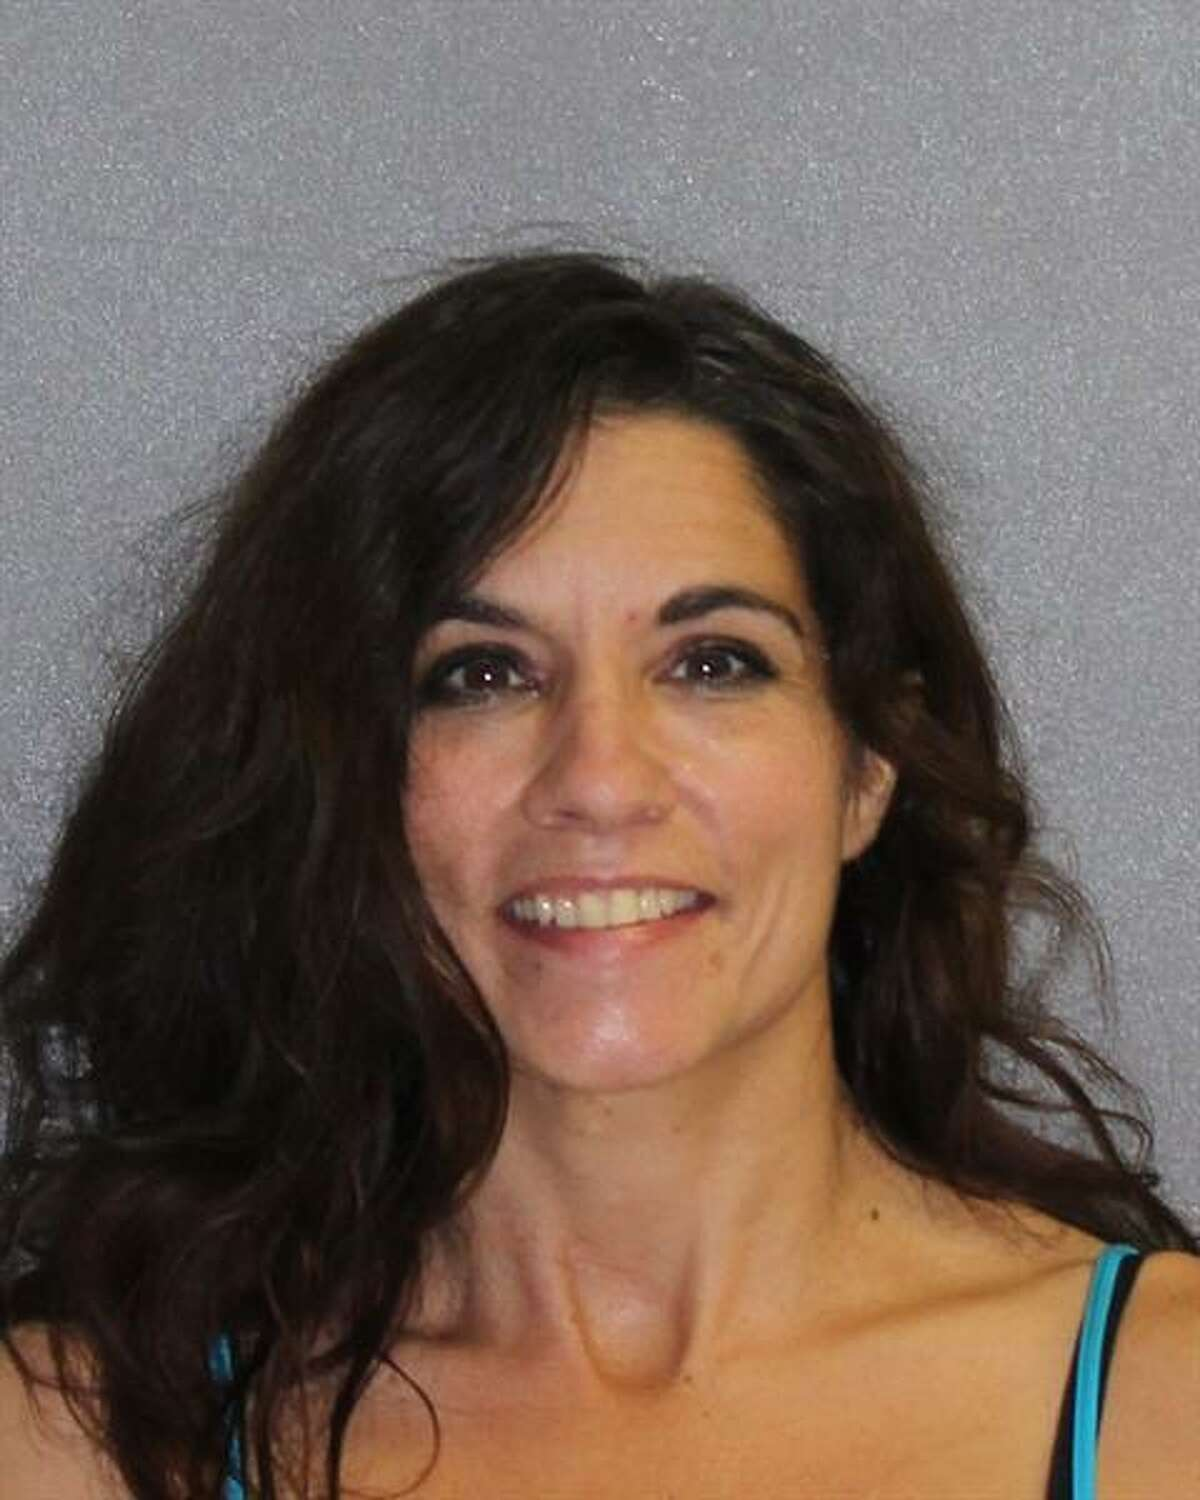 Linda Hadad's booking photo taken for driving while a suspended license on Aug. 13, 2015. In another reported conversation Hadad said